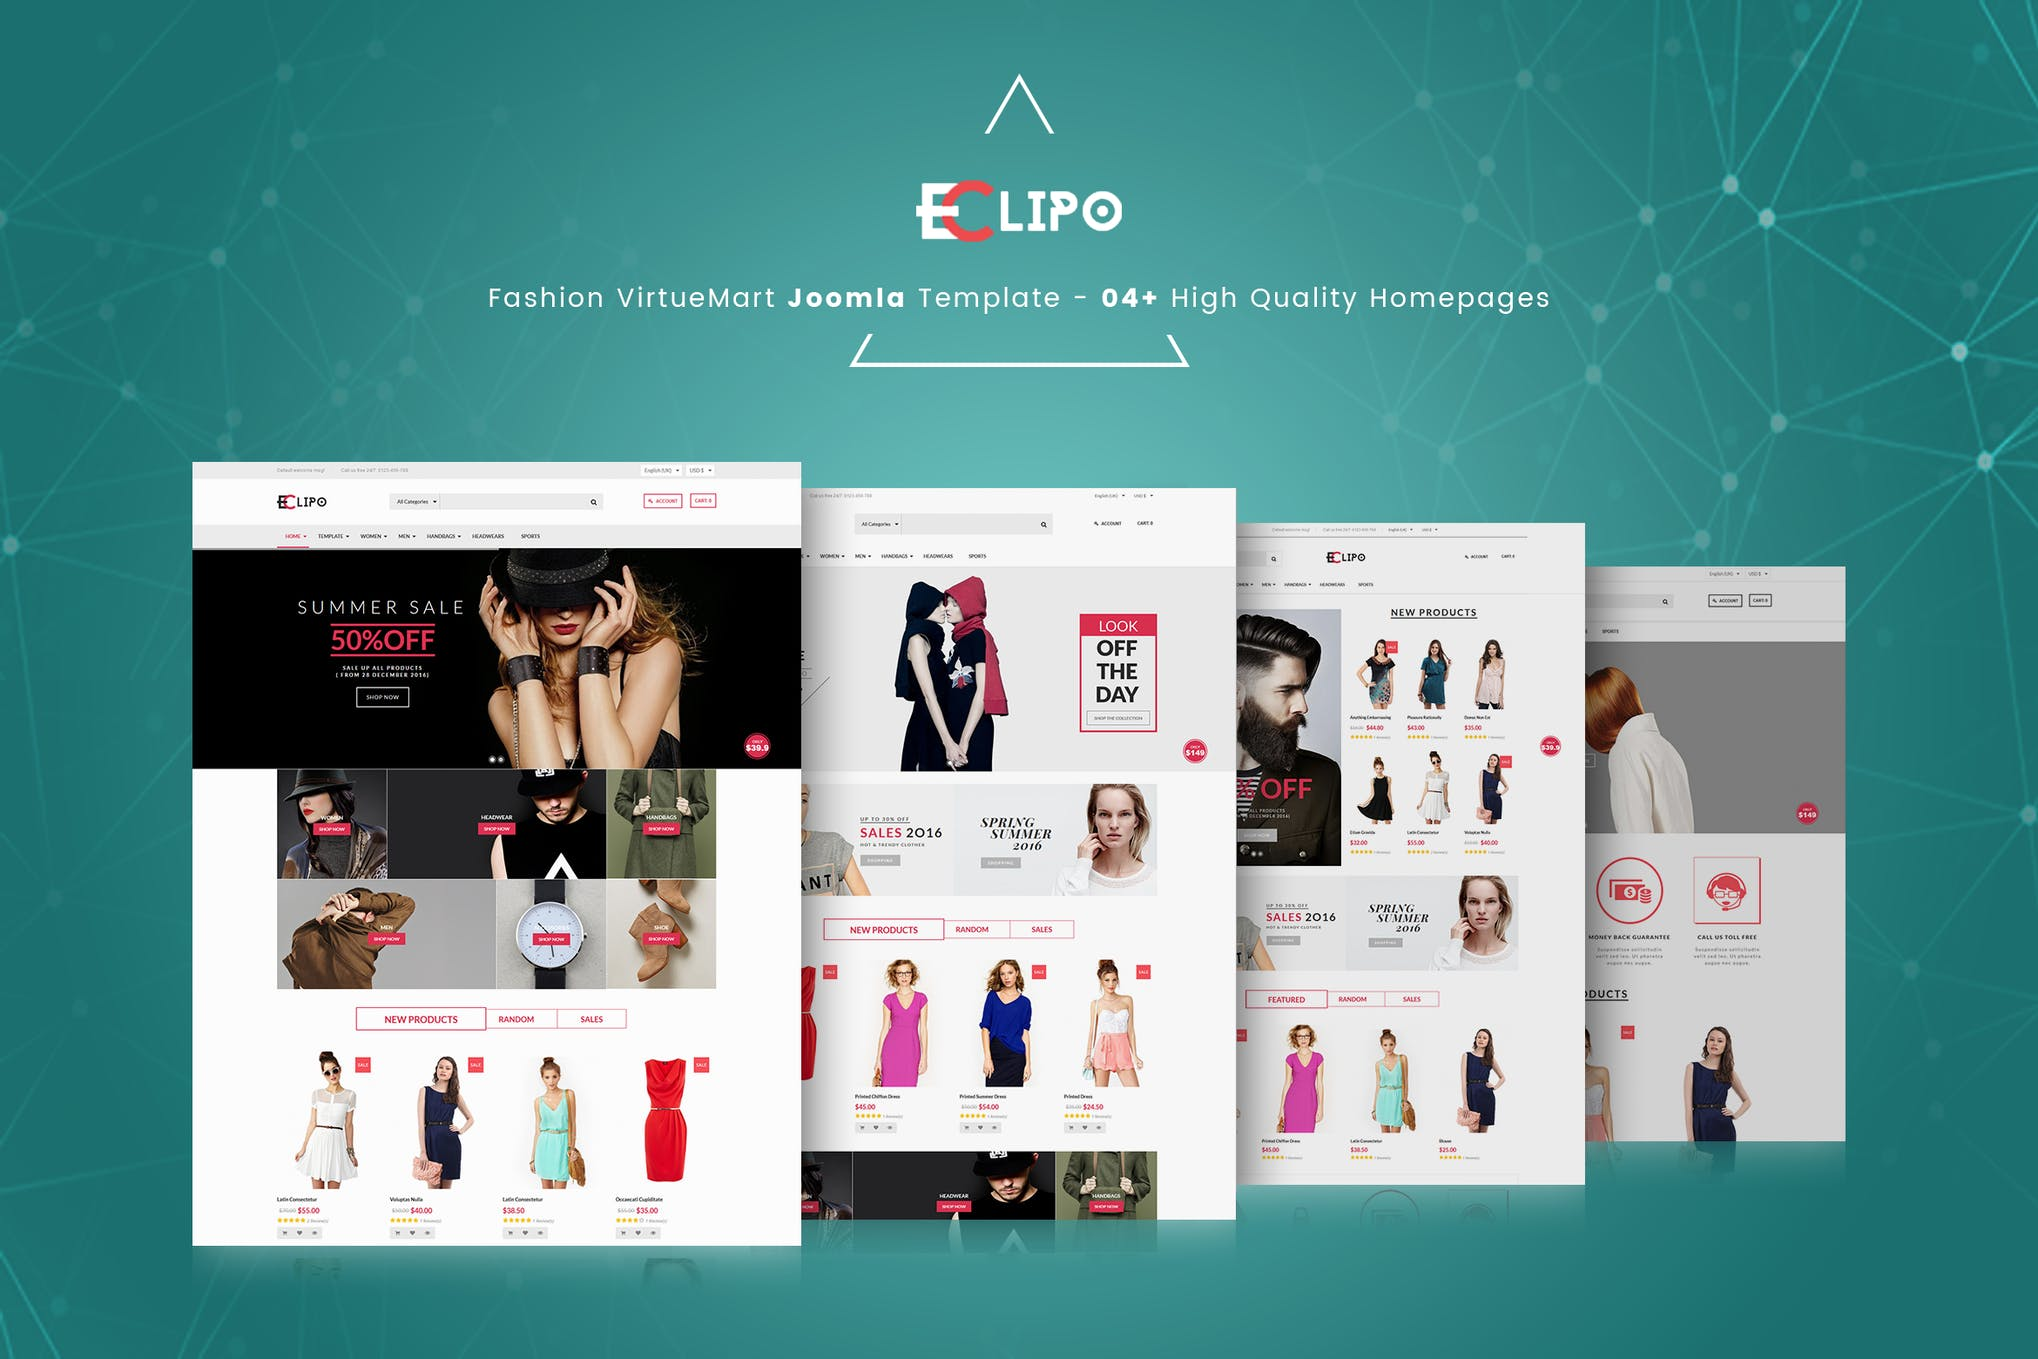 Eclipo - Fashion VirtueMart Joomla Template